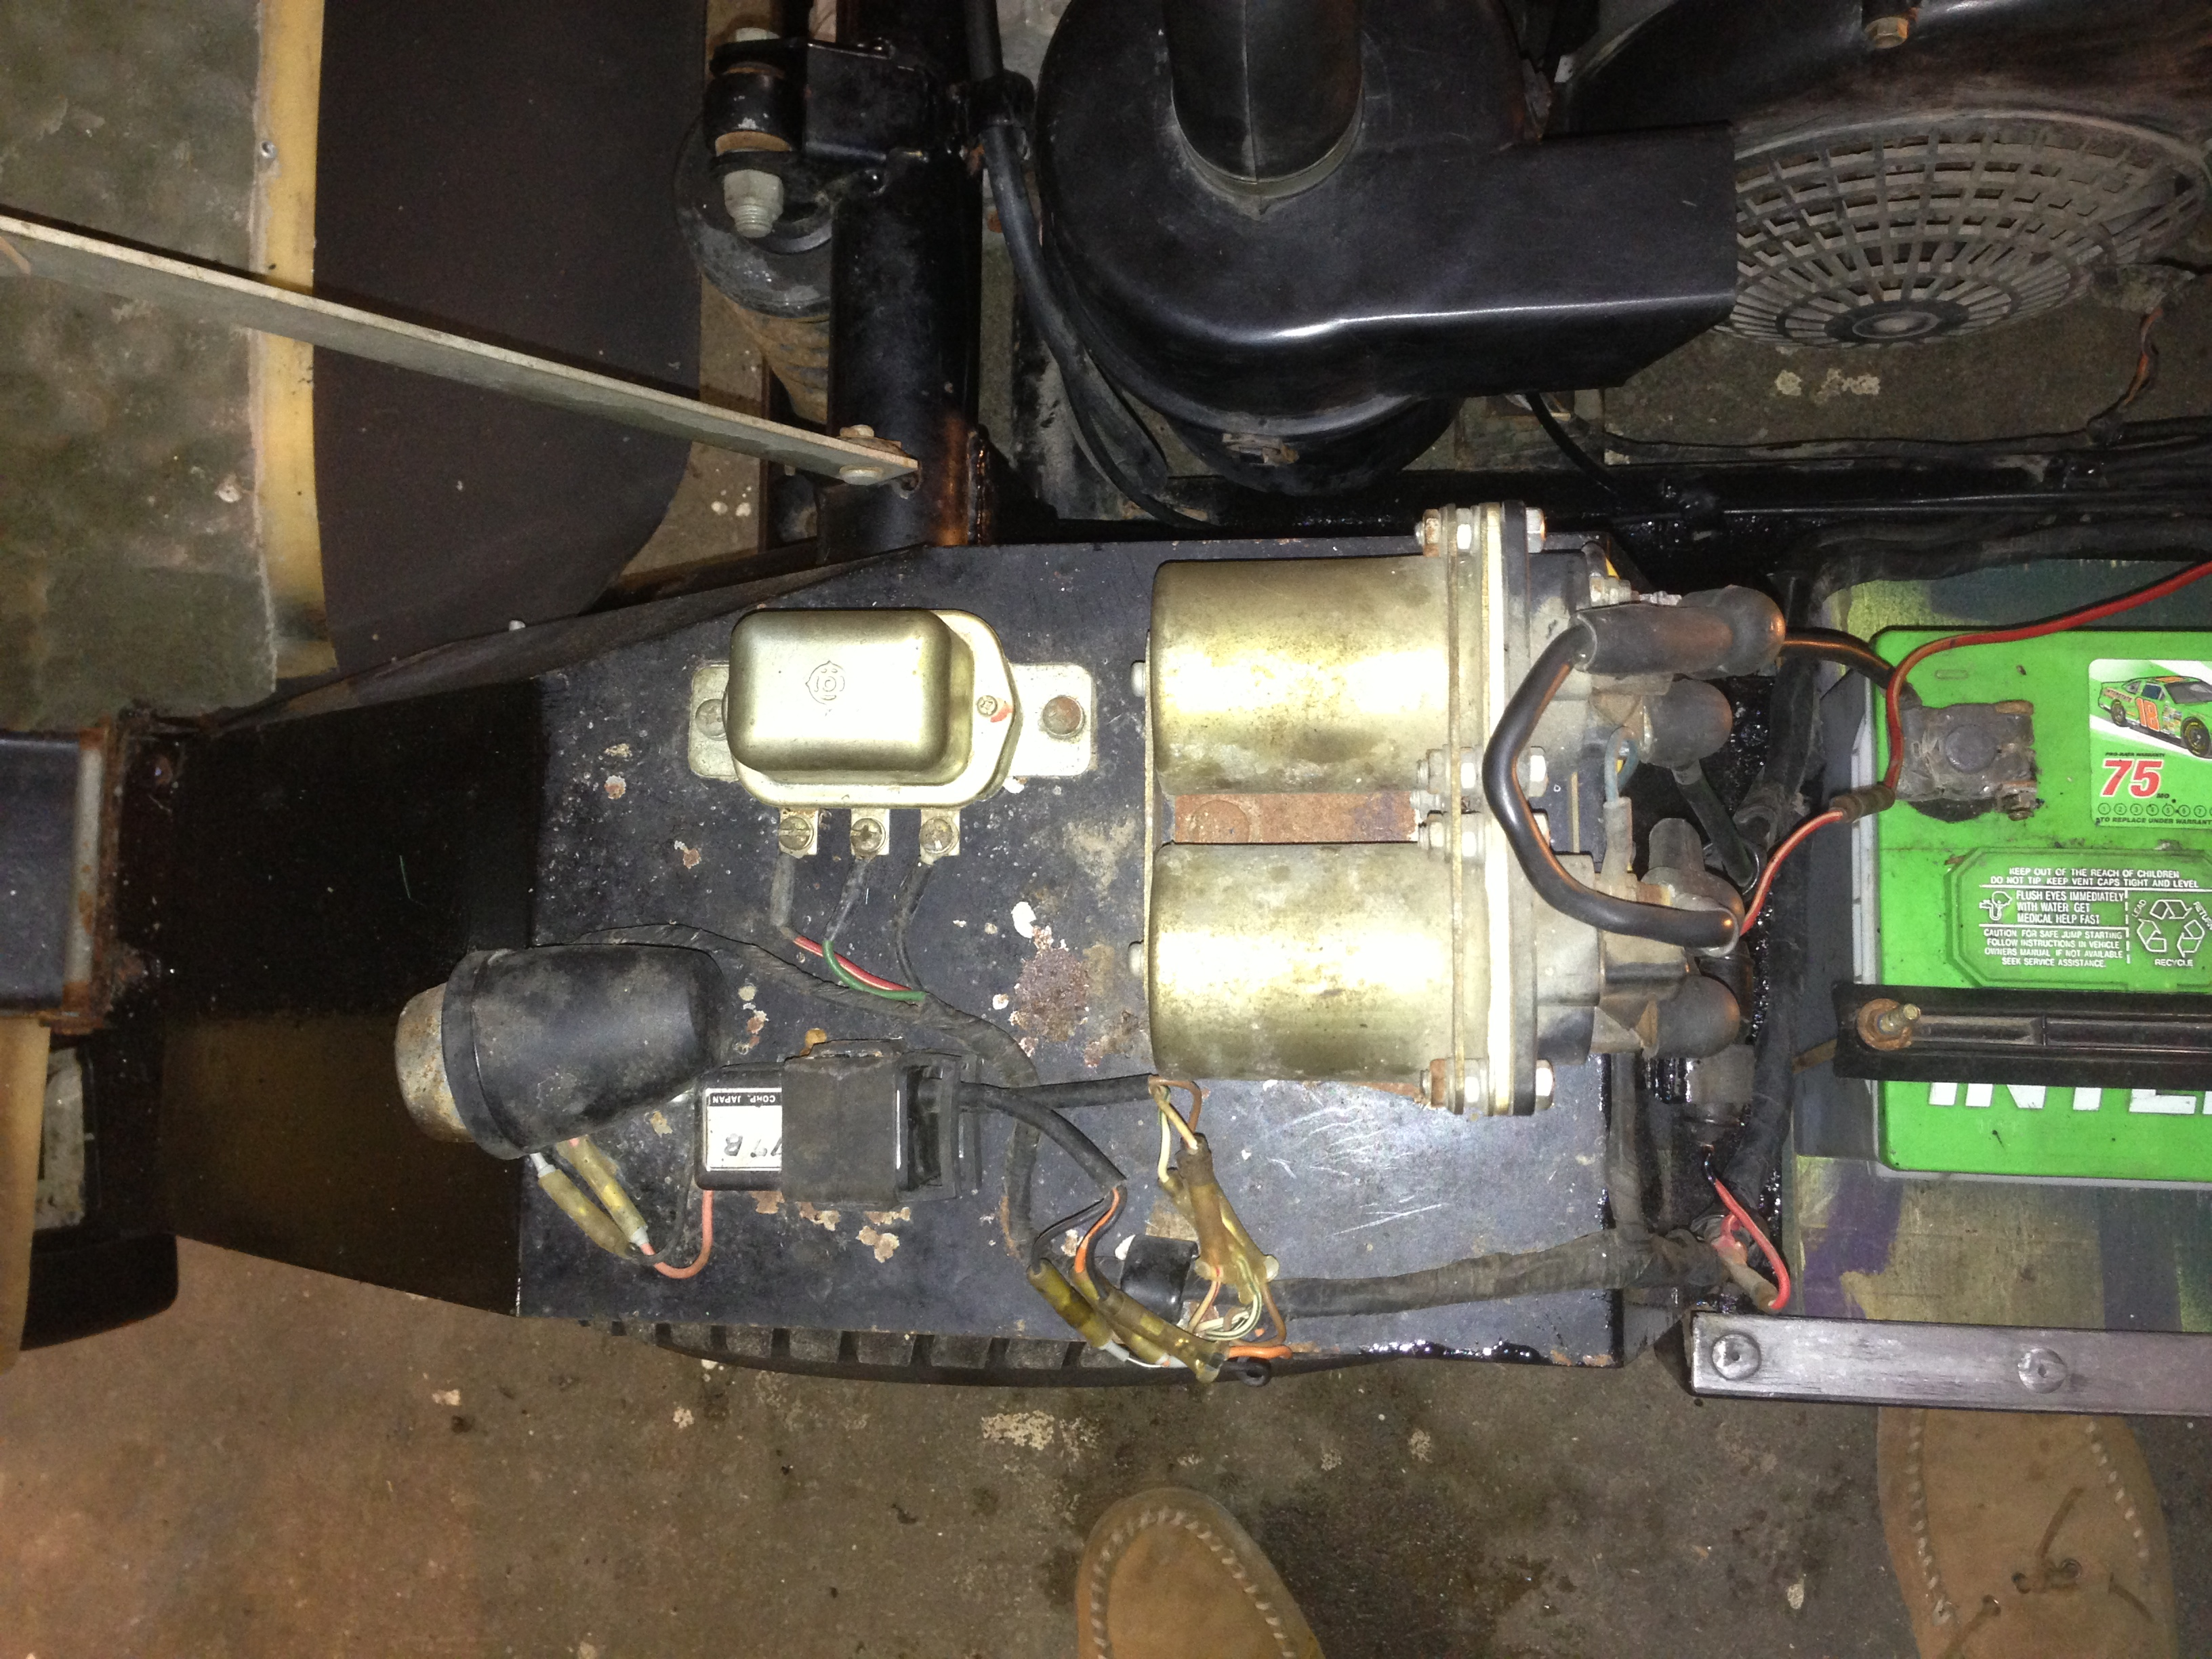 Yamaha G1 Restoration Project Free Image About Wiring Diagram On Vw Golf Front Suspension Solenoids